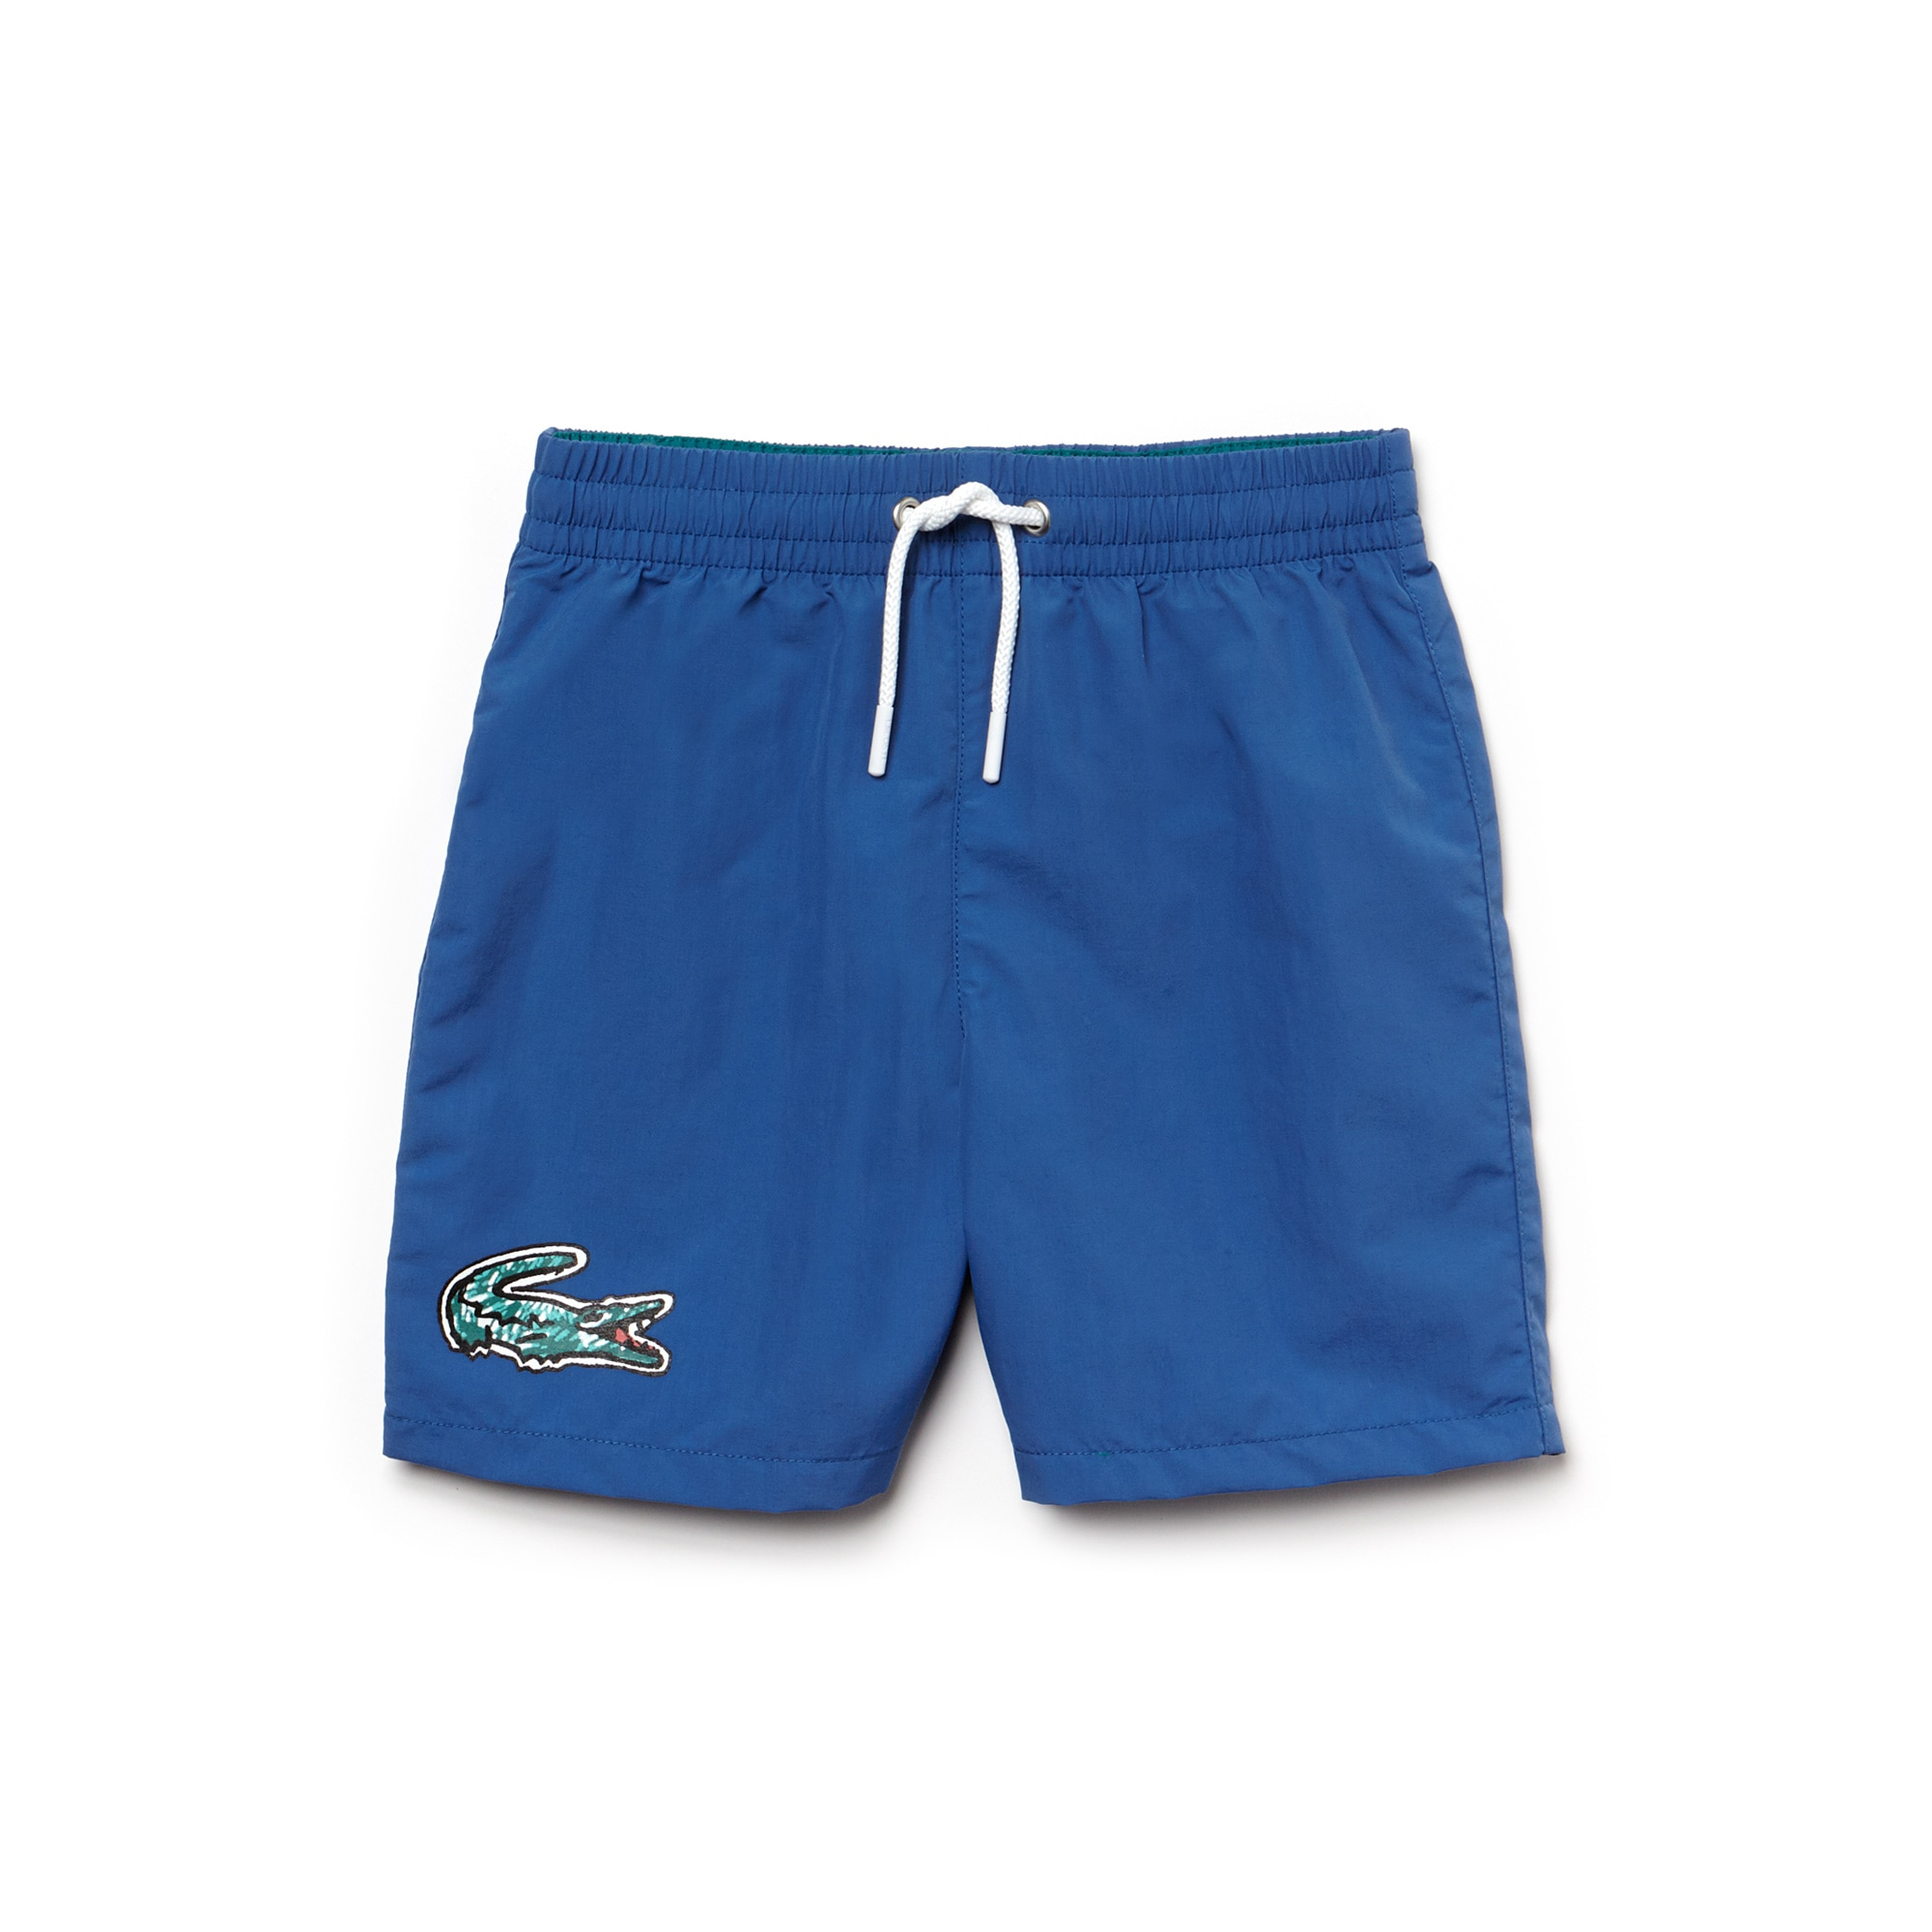 Cheap Pay With Paypal Free Shipping Finishline Swimming shorts Lacoste blue Lacoste 3Oc7swVL